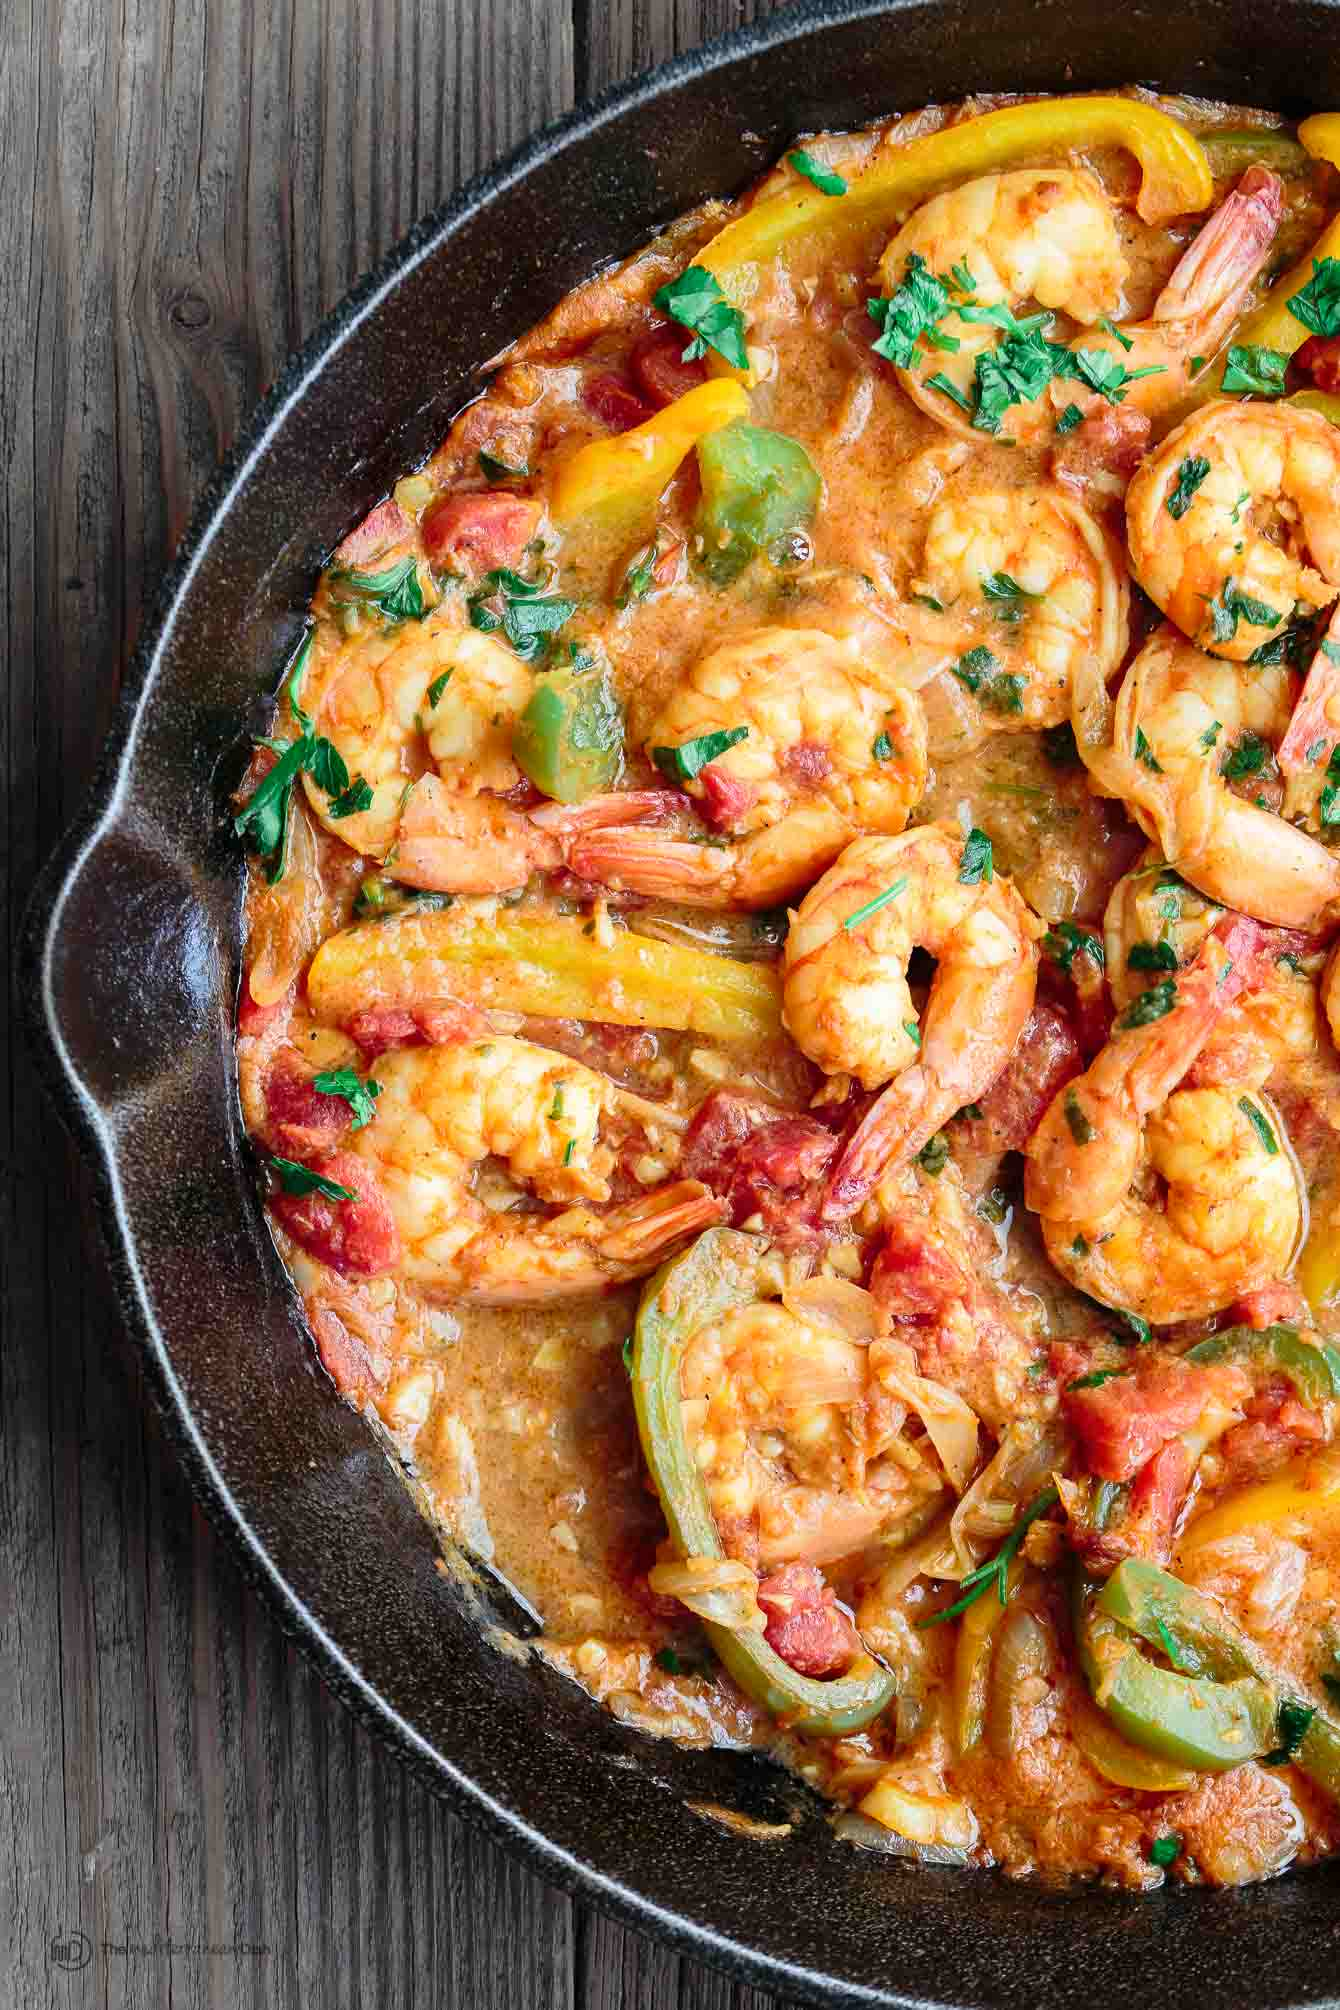 Easy shrimp recipe mediterranean style the mediterranean dish easy shrimp recipe the mediterranean dish easy mediterranean skillet shrimp packed with flavor forumfinder